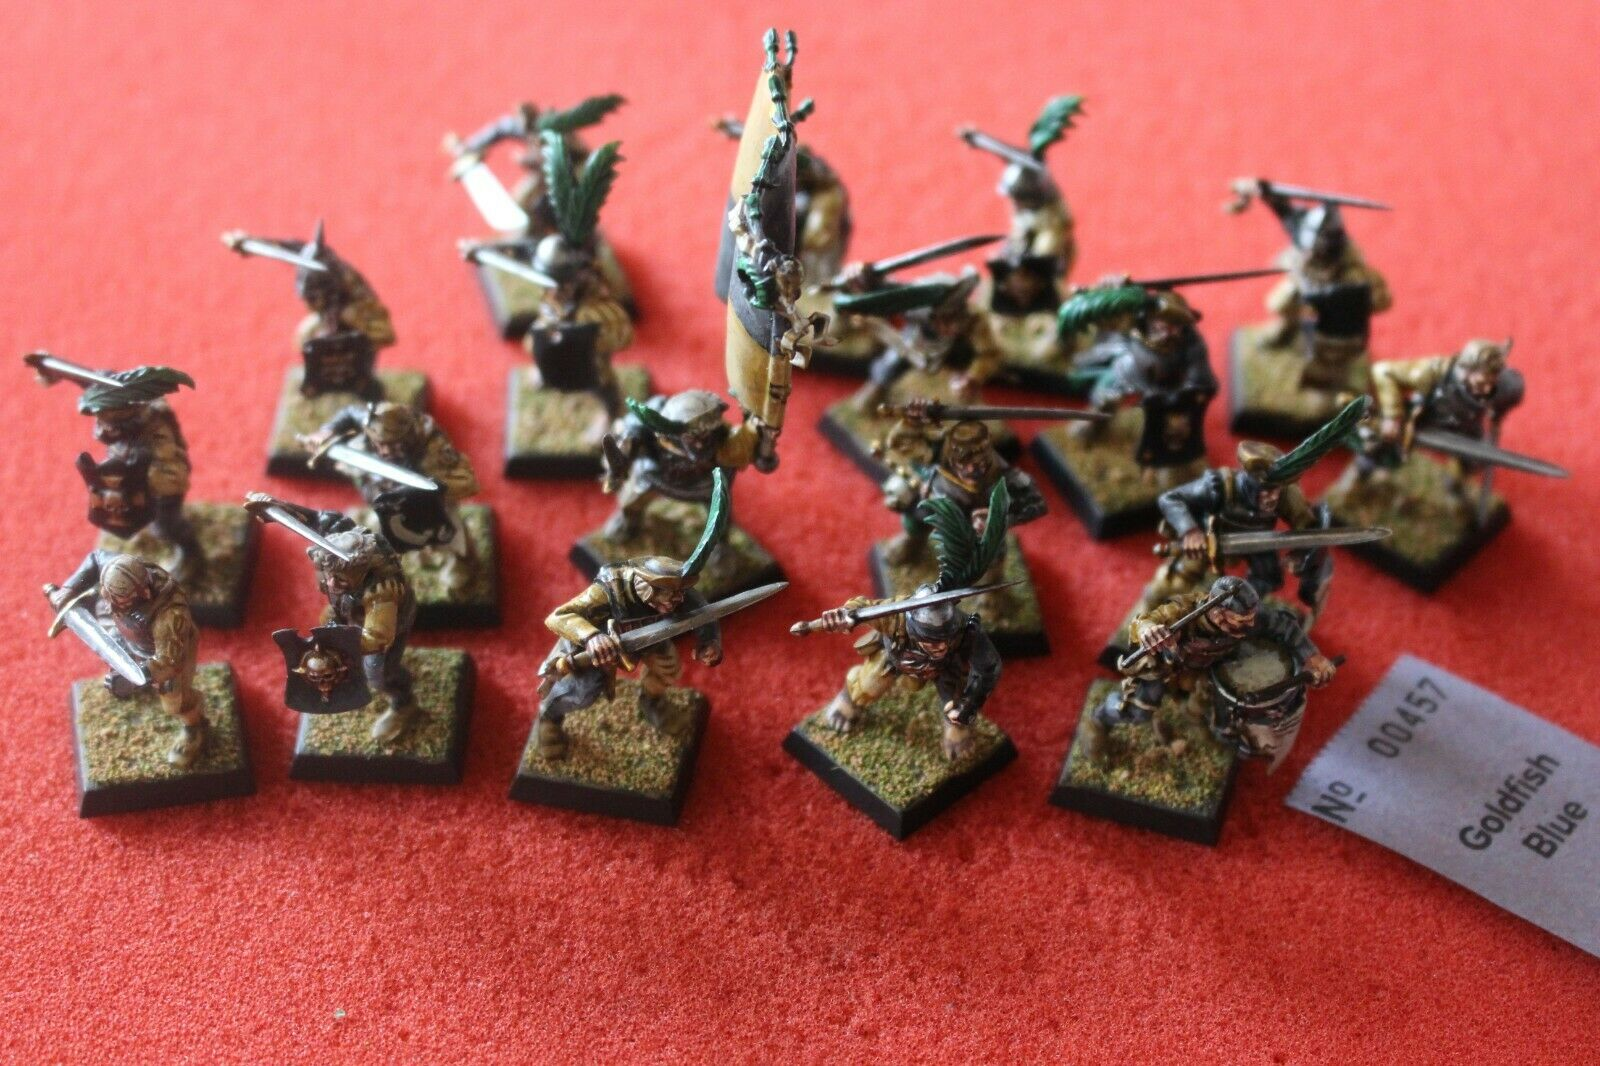 Games WORKSHOP WARHAMMER REGGIMENTO DI GUARDIA freeguild dipinto Empire State TRUPPE